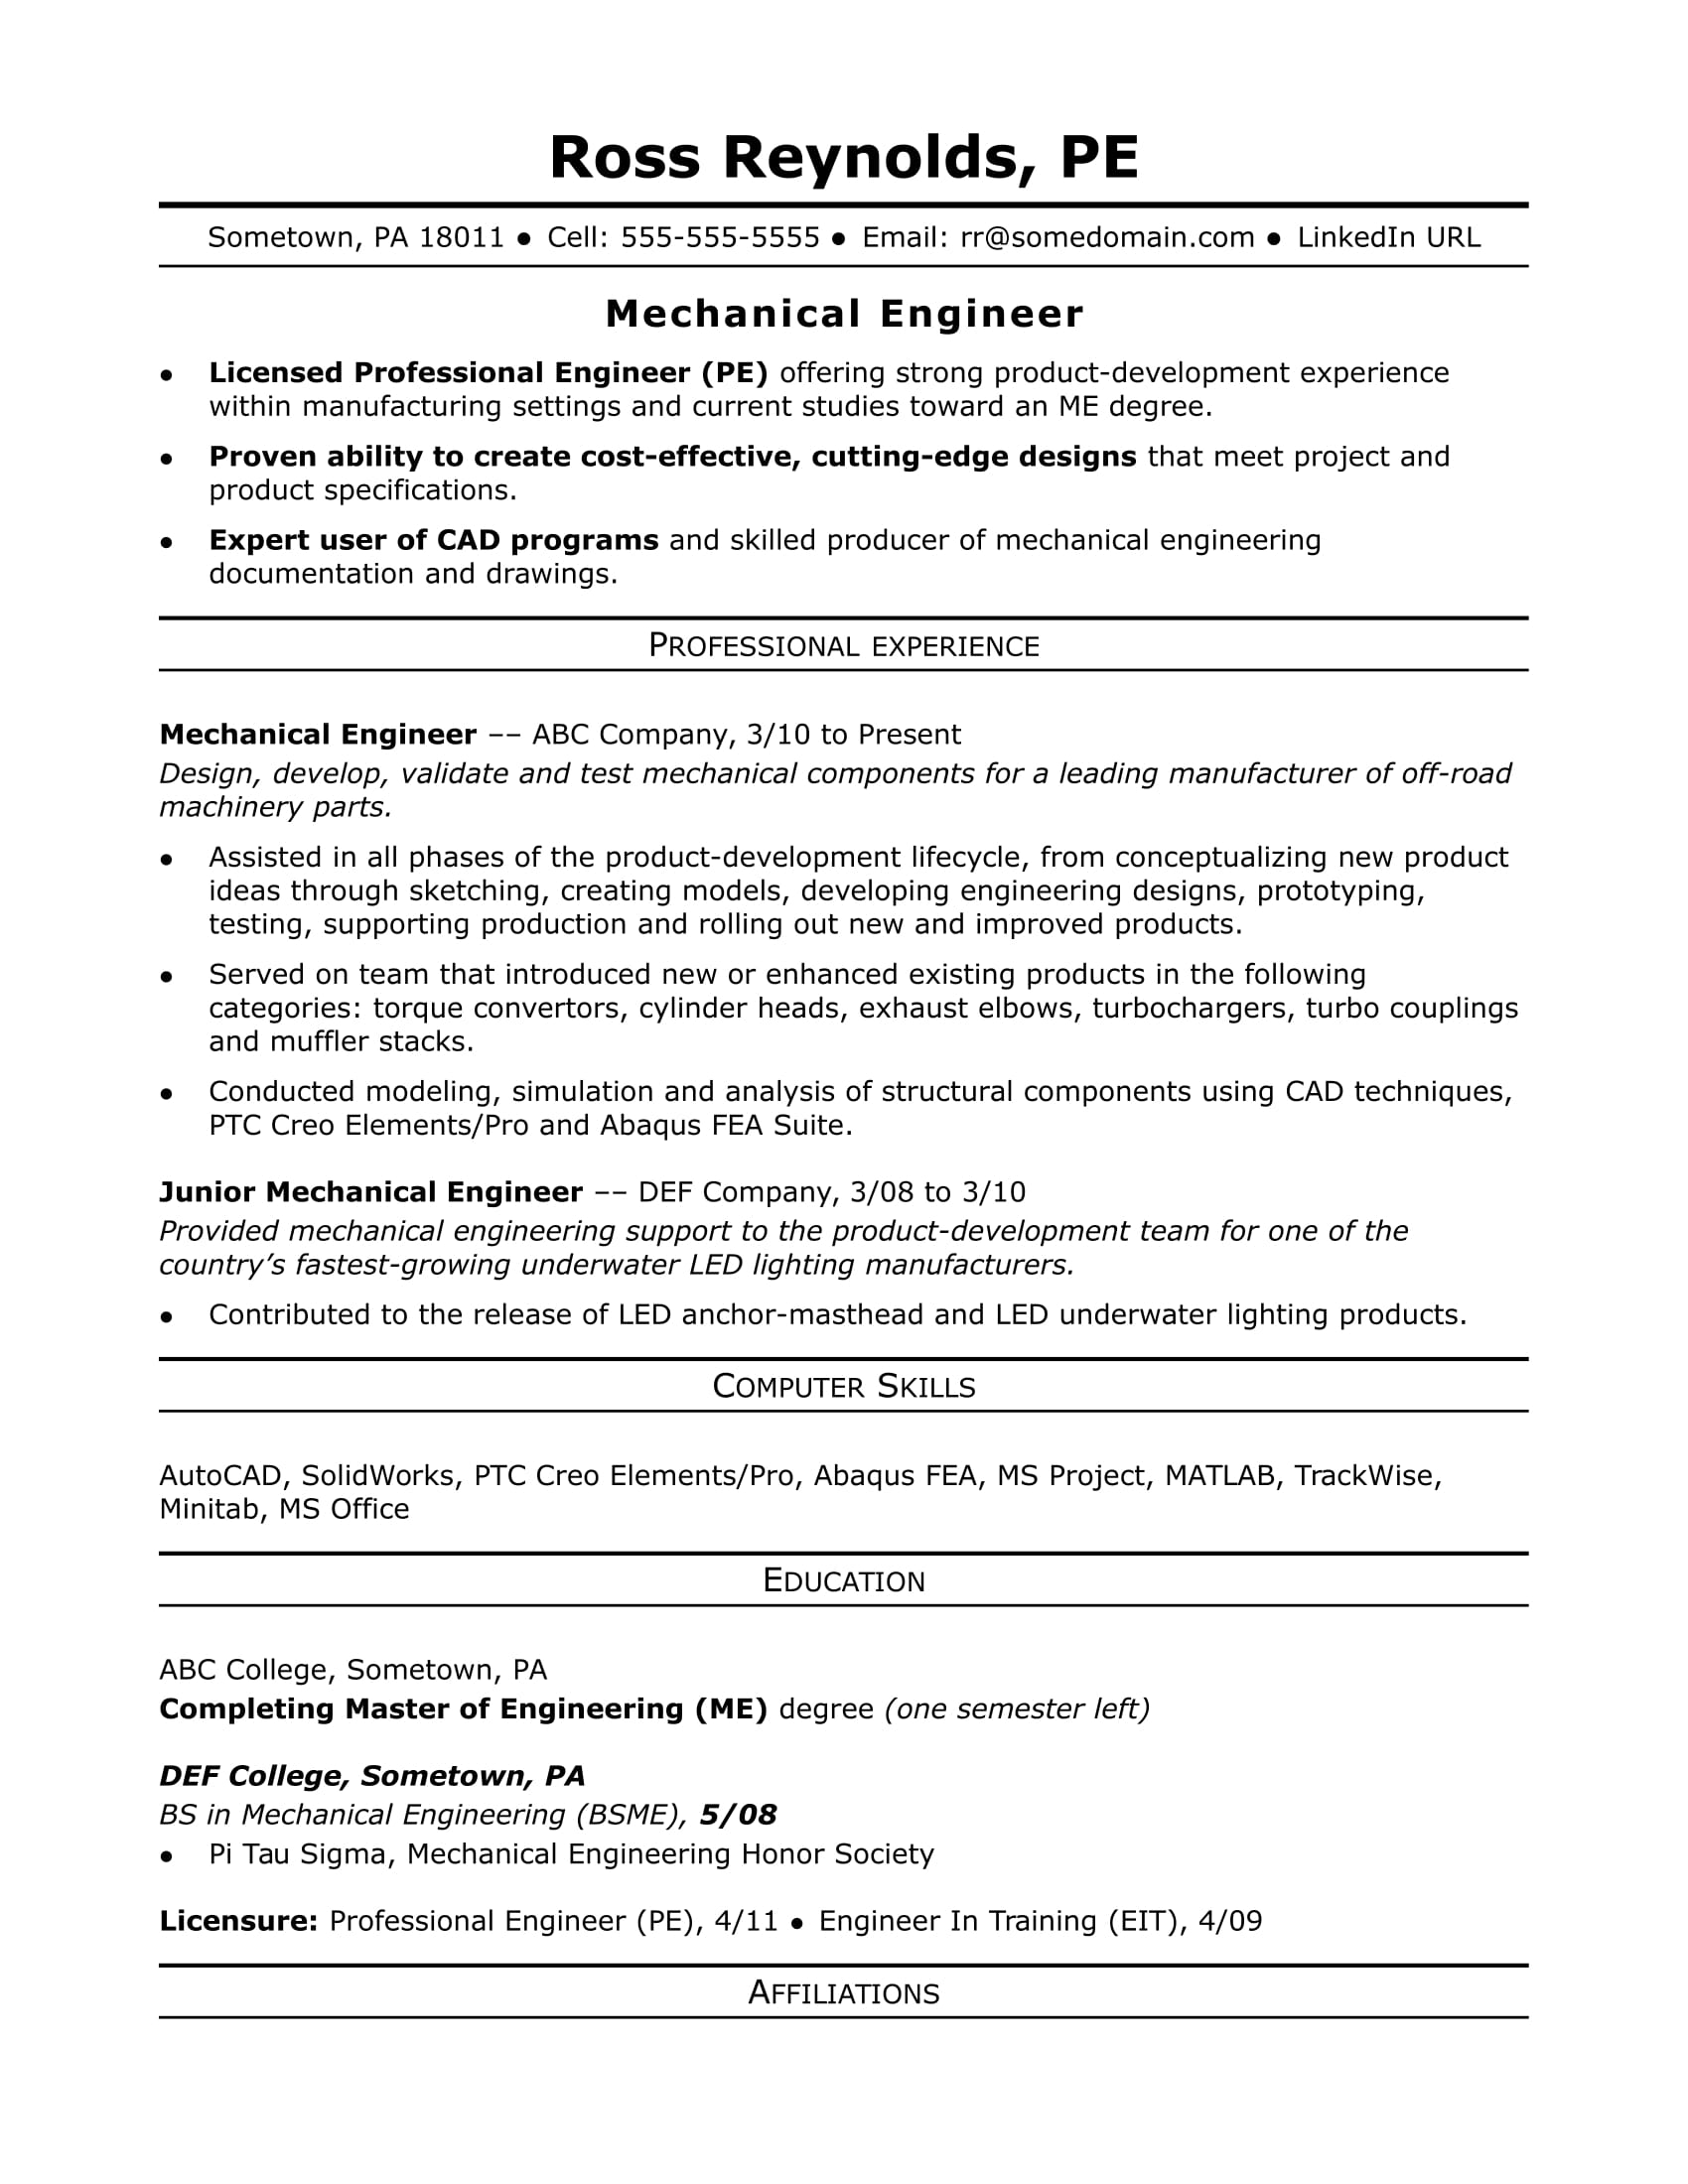 Great Sample Resume For A Midlevel Mechanical Engineer  Engineer Resume Examples